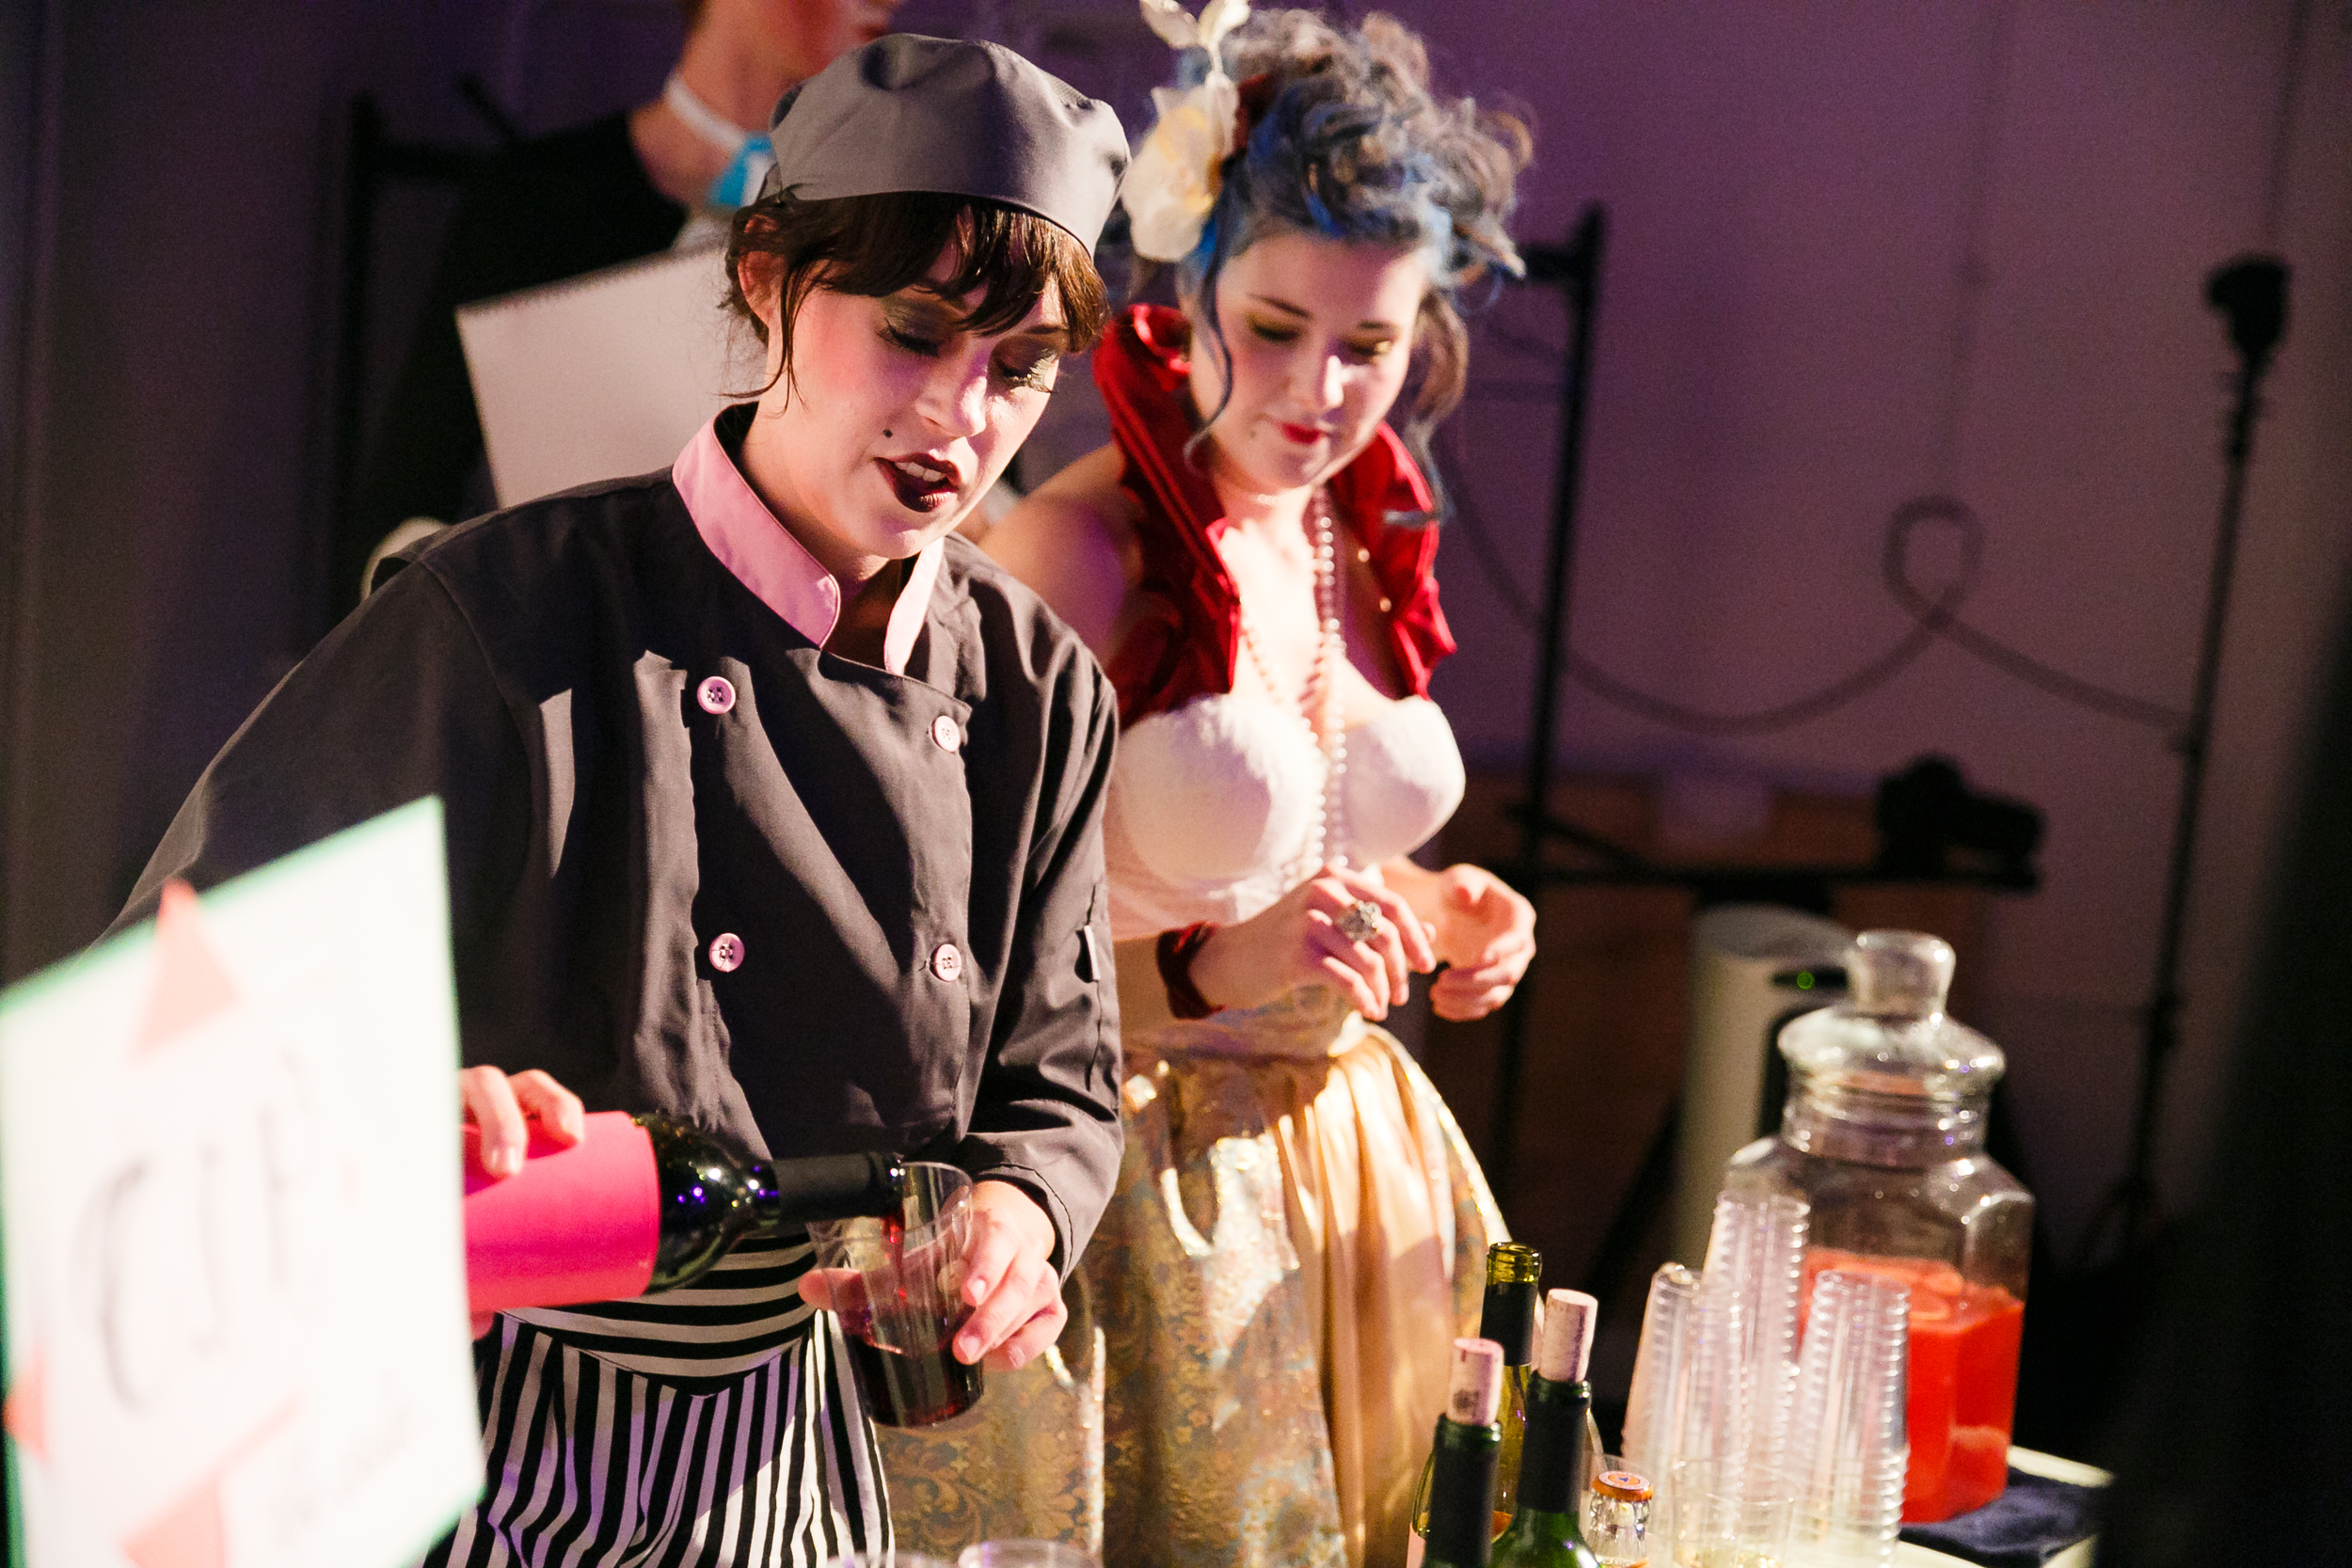 Bartenders in costume during immersive theater event